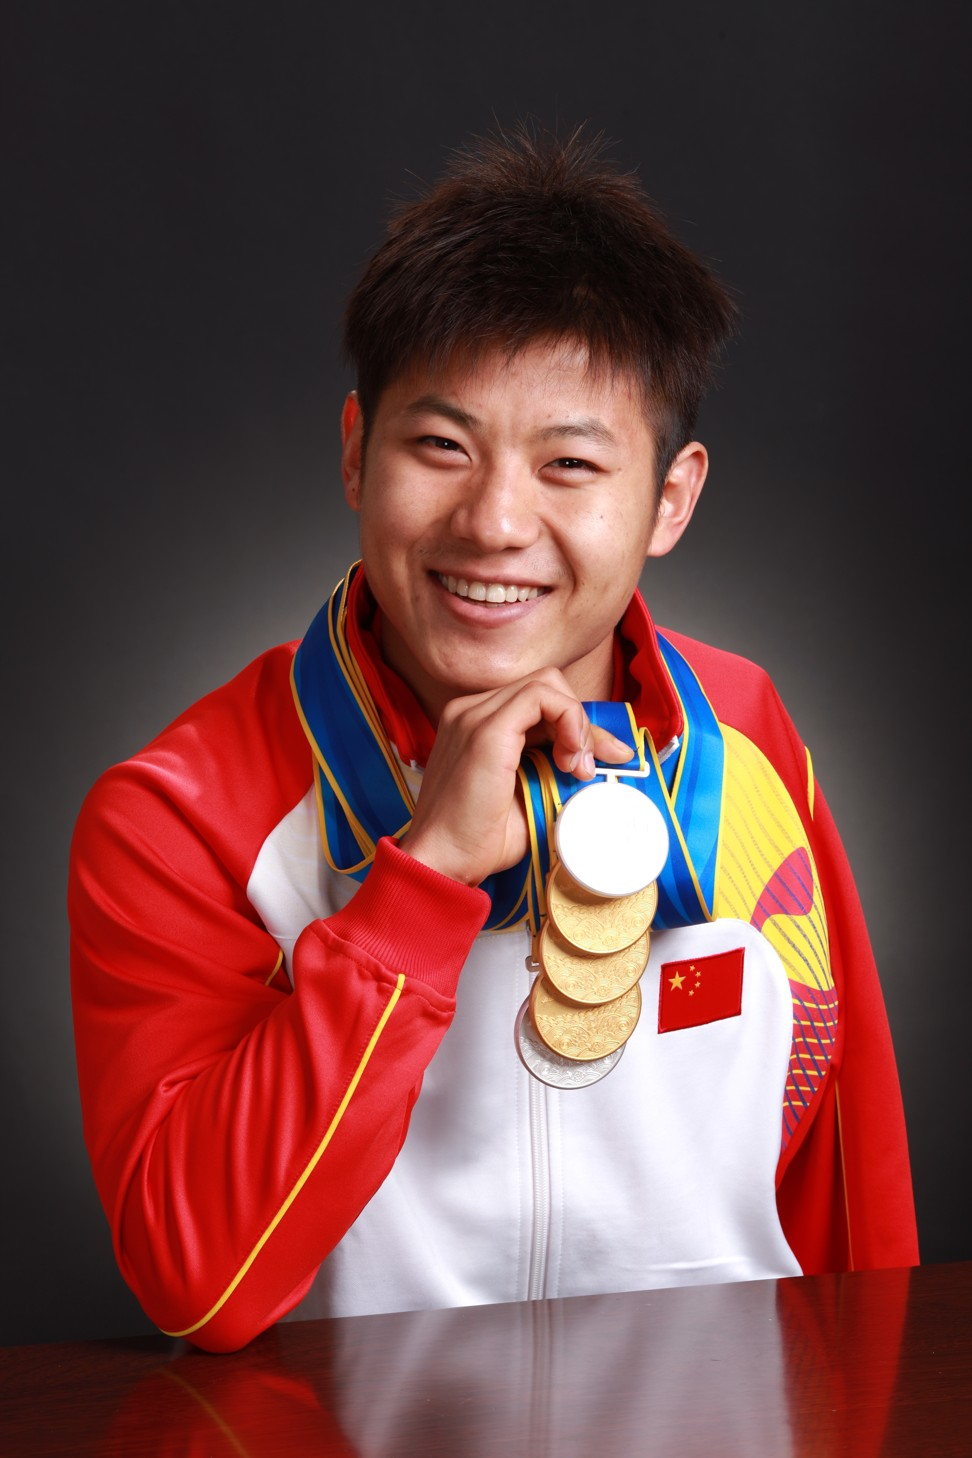 Wang Jiachao after the 2010 Asian Games in Guangzhou, proudly displaying his three golds and two silver medals.